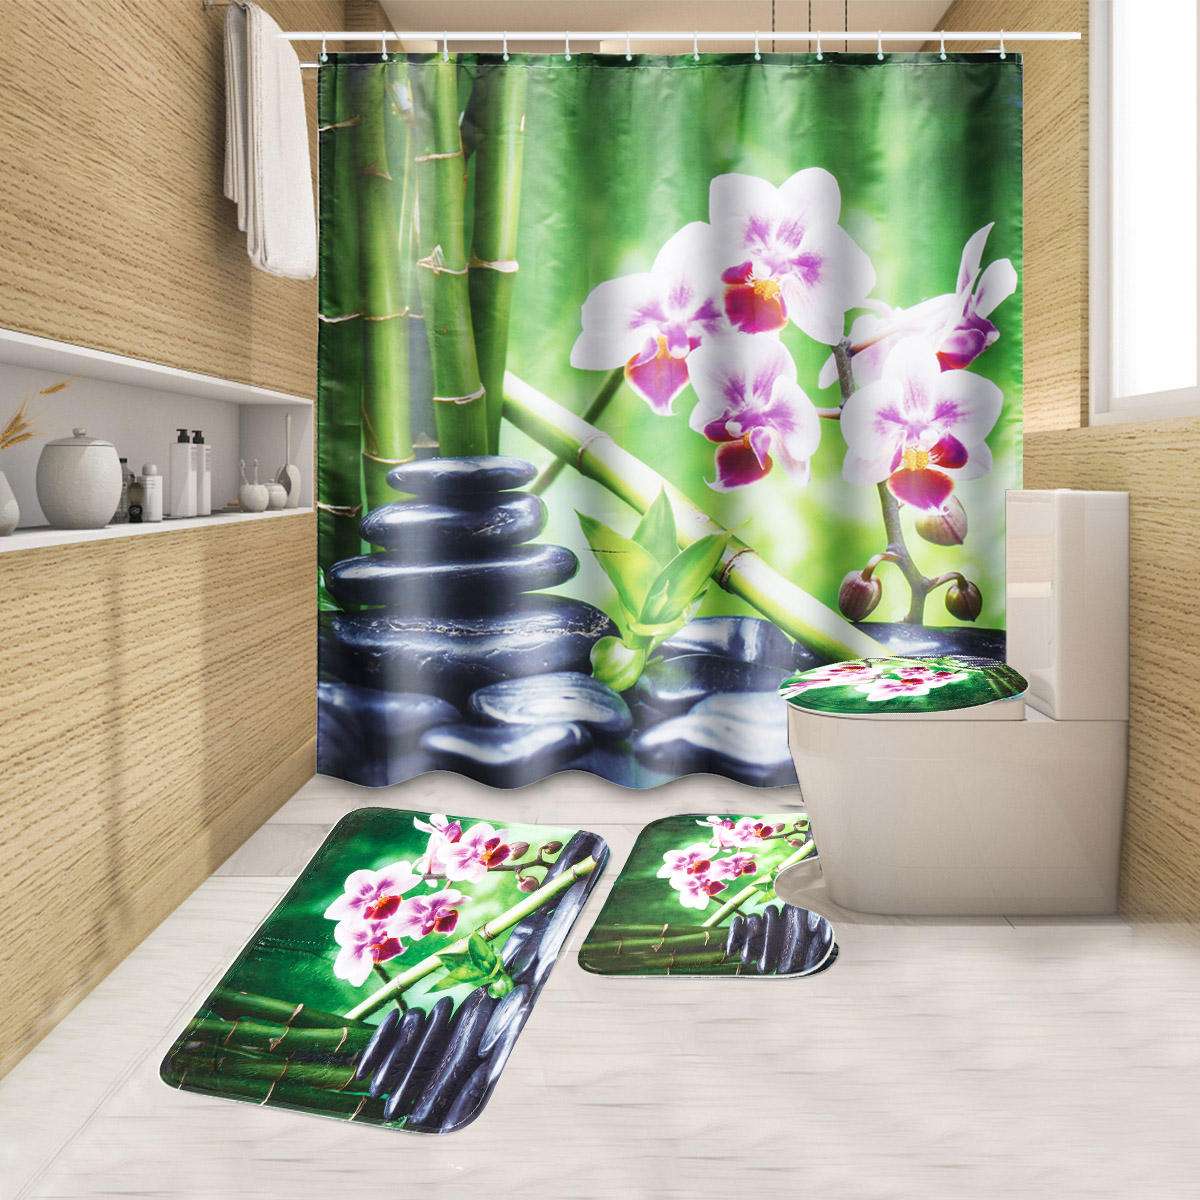 180x180CM Bamboo Pebble Orchid Toilet Rug Mat Bathroom Shower Curtain with Hooks